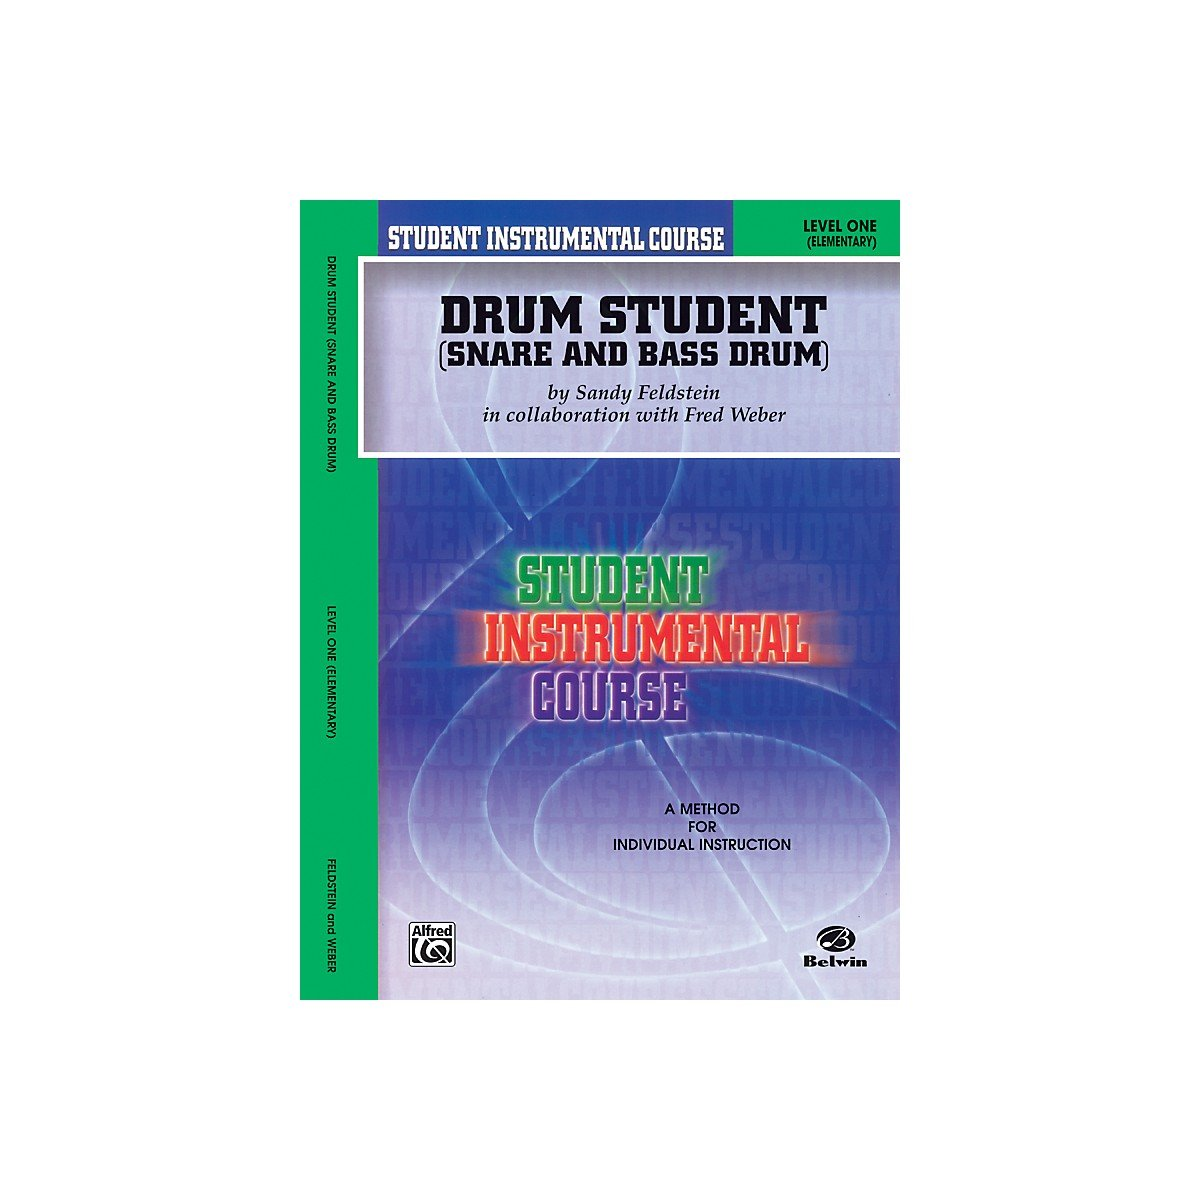 Alfred Student Instrumental Course Drum Student Level I B001OTE8VI